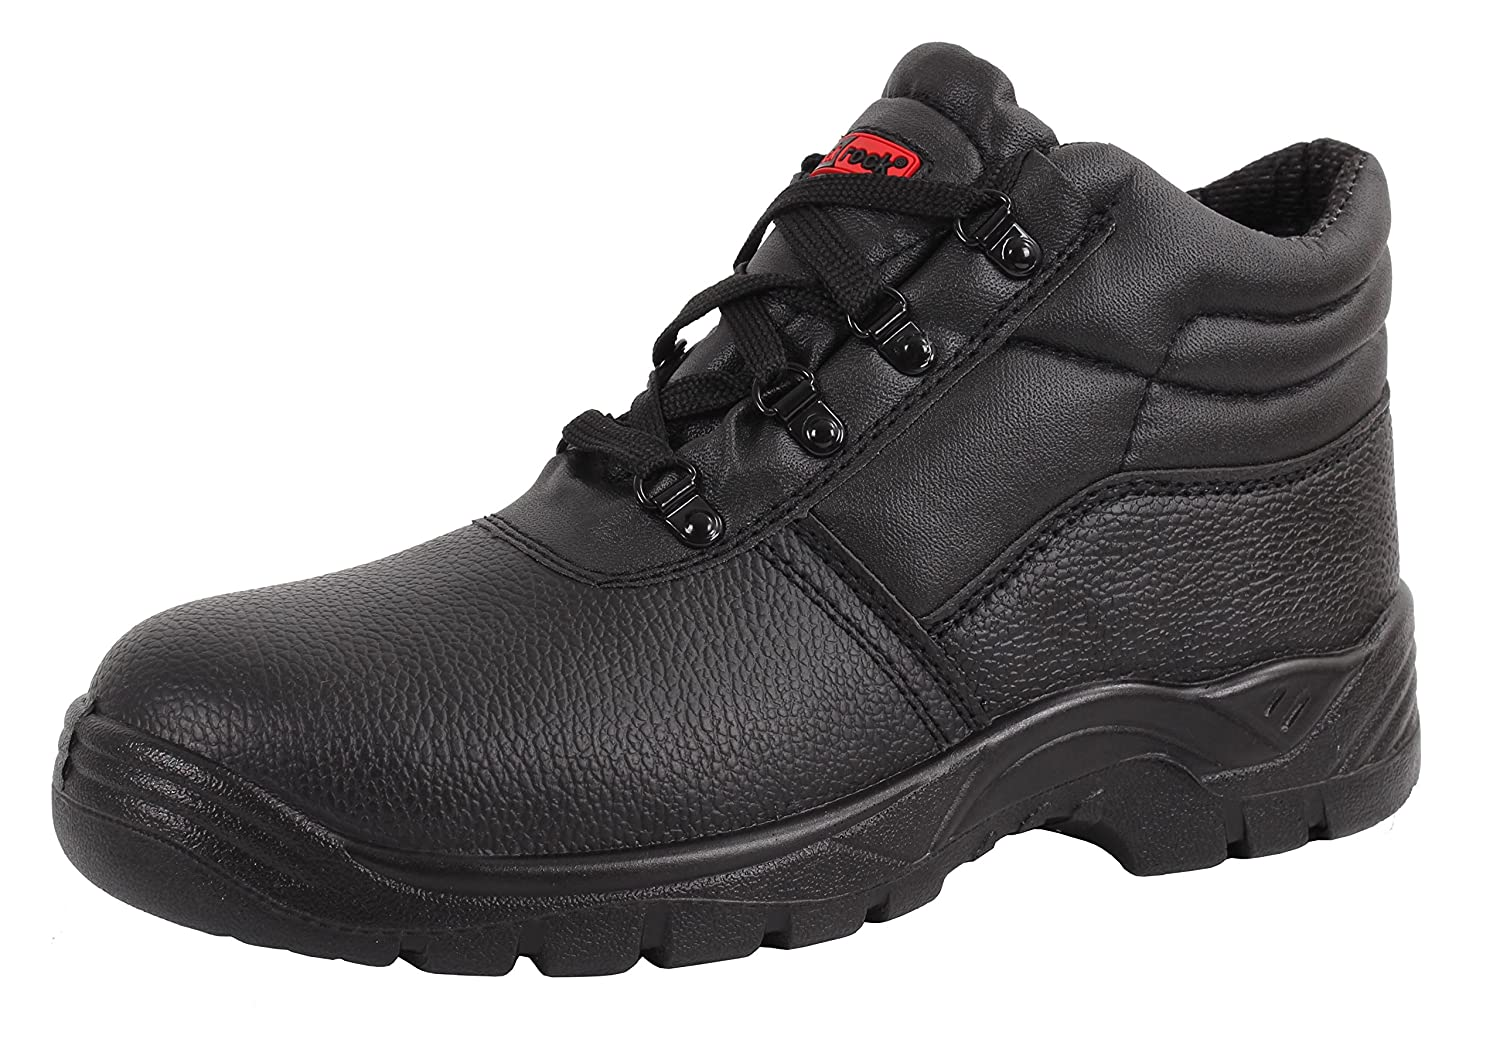 Blackrock Black Leather Work Safety Chukka Boots With Steel Toe Caps And Midsole (UK 9/EURO 43)